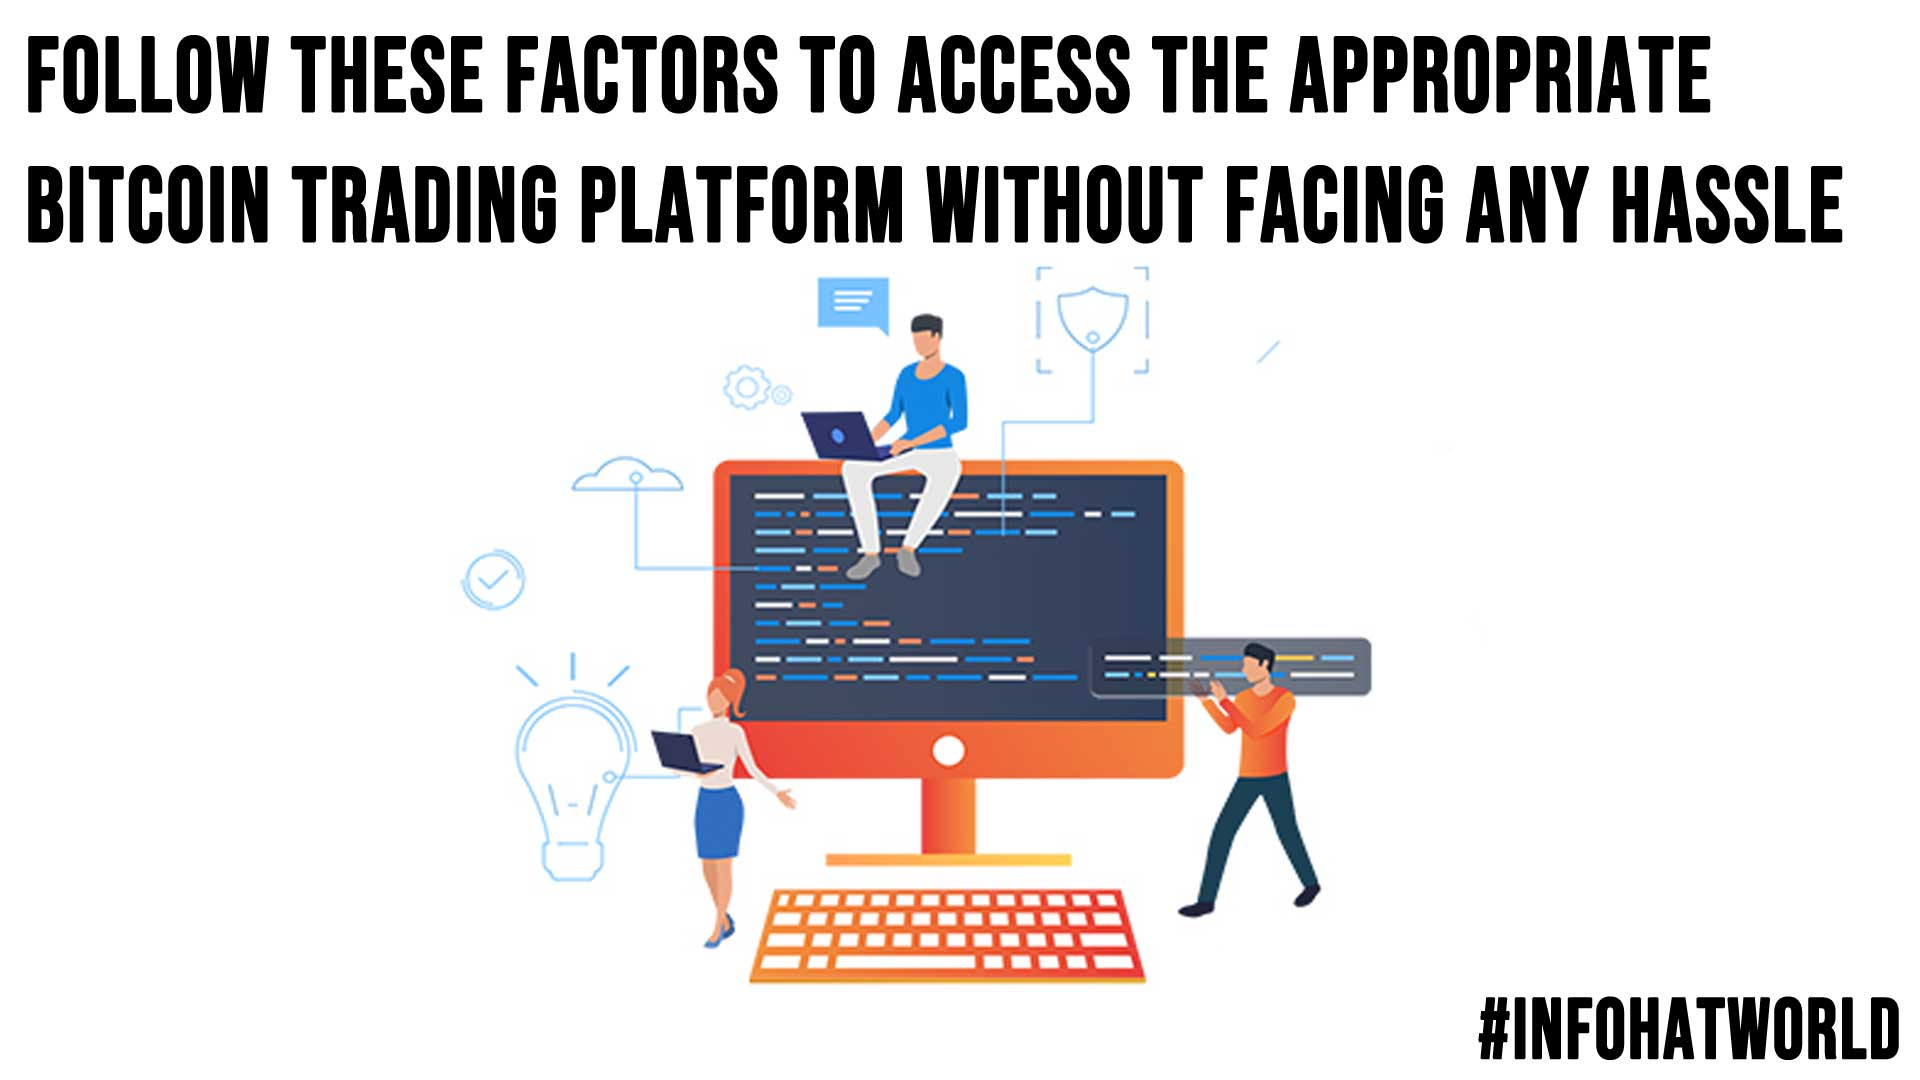 Follow These Factors to Access the Appropriate Bitcoin Trading Platform Without Facing Any Hassle